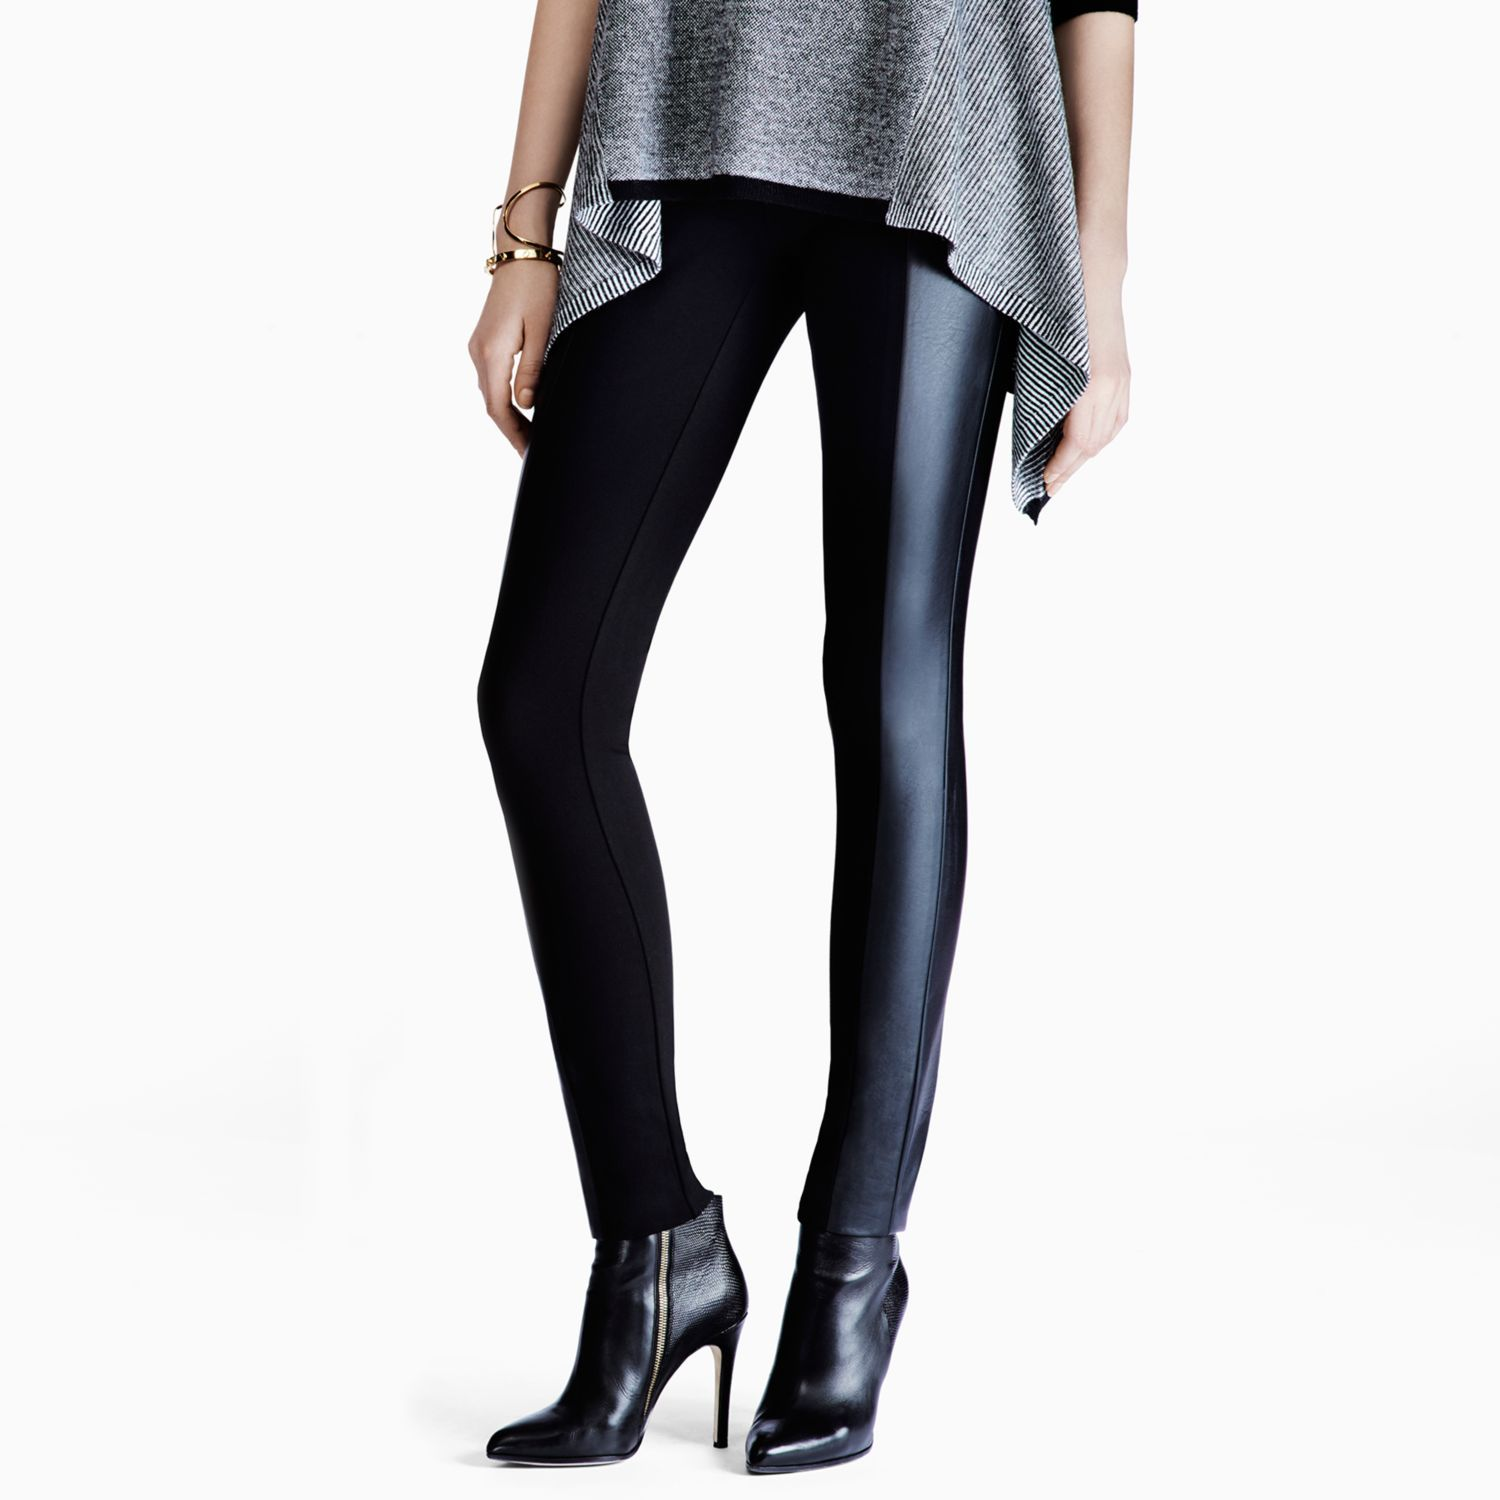 5d40575e2e4f6a Rochelle Faux-Leather Legging - Leggings Pants & Shorts from Club Monaco  Canada